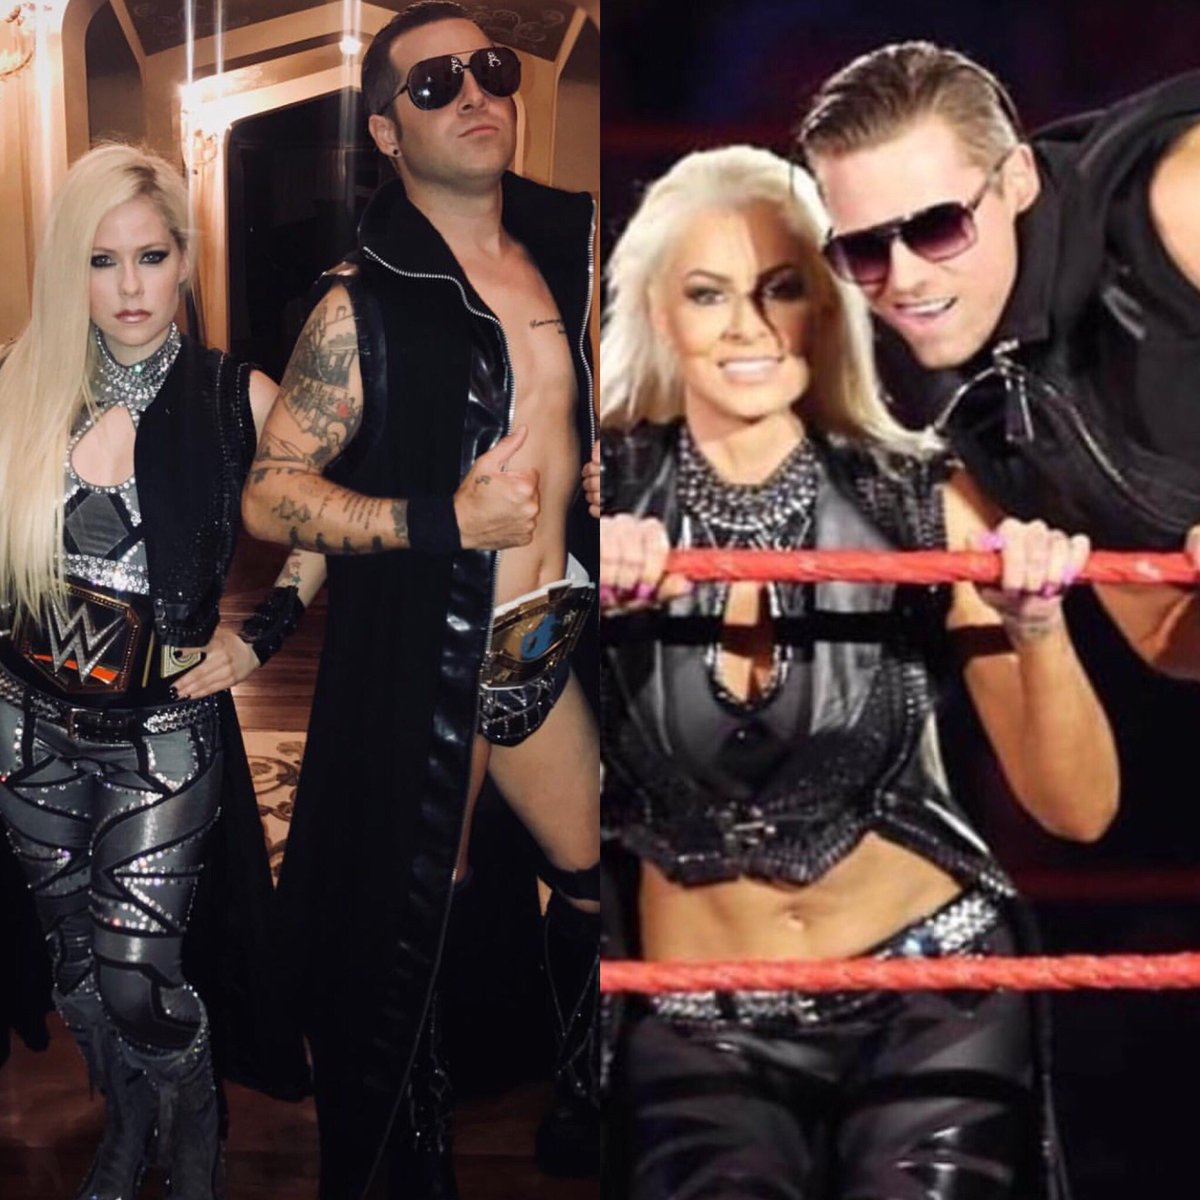 maryse mizanin on twitter are you seeing double greatest halloween costumes ever avrillavigne and ryancabrera are awesome